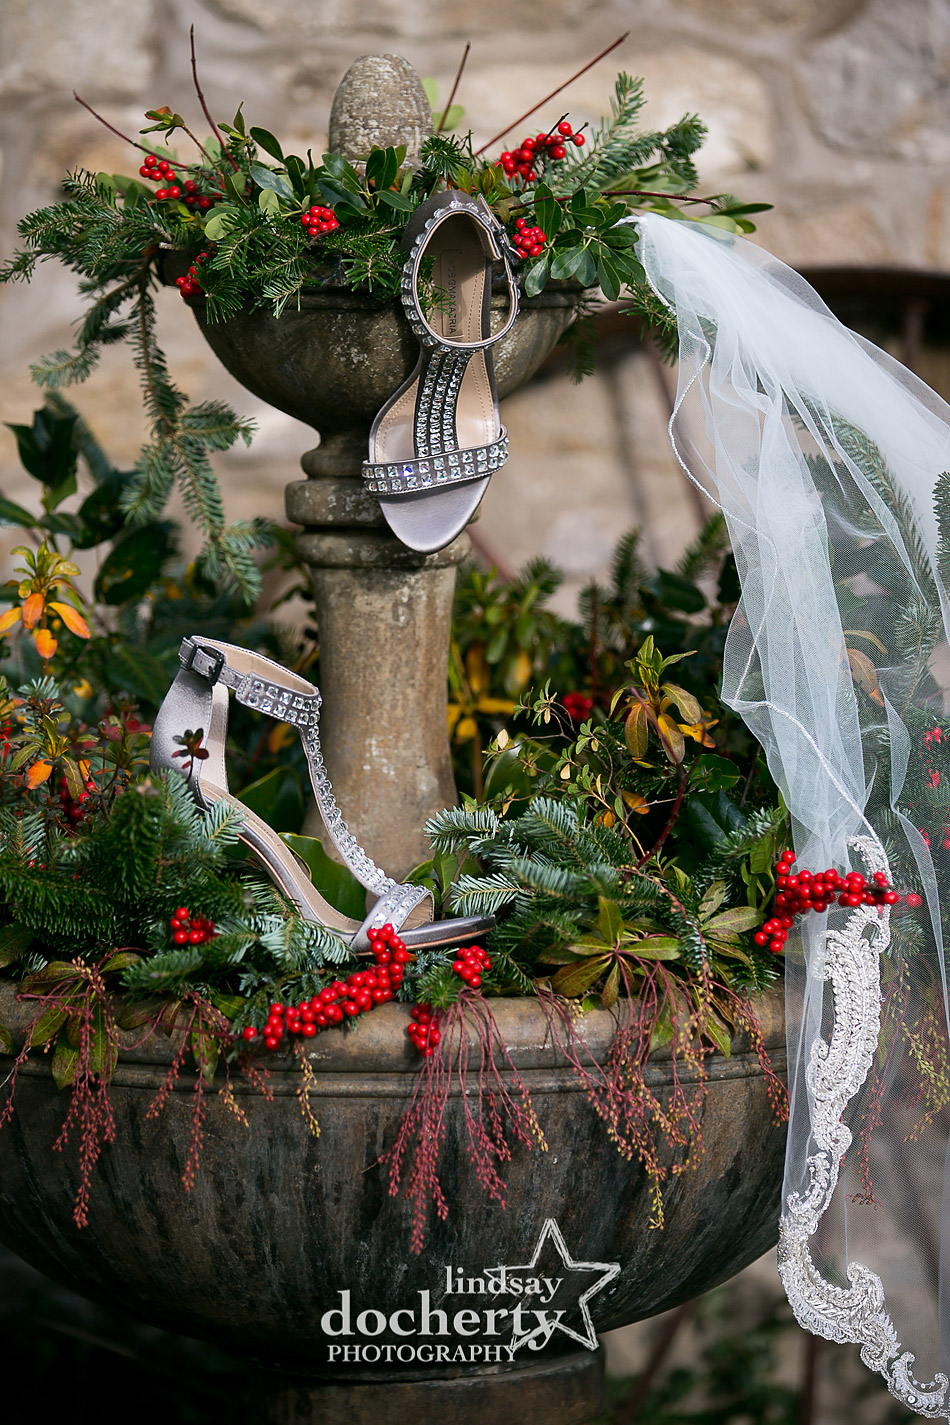 rhinestone bridal heels and veil on holiday greens at winter wedding at Holly Hedge Estate in New Hope